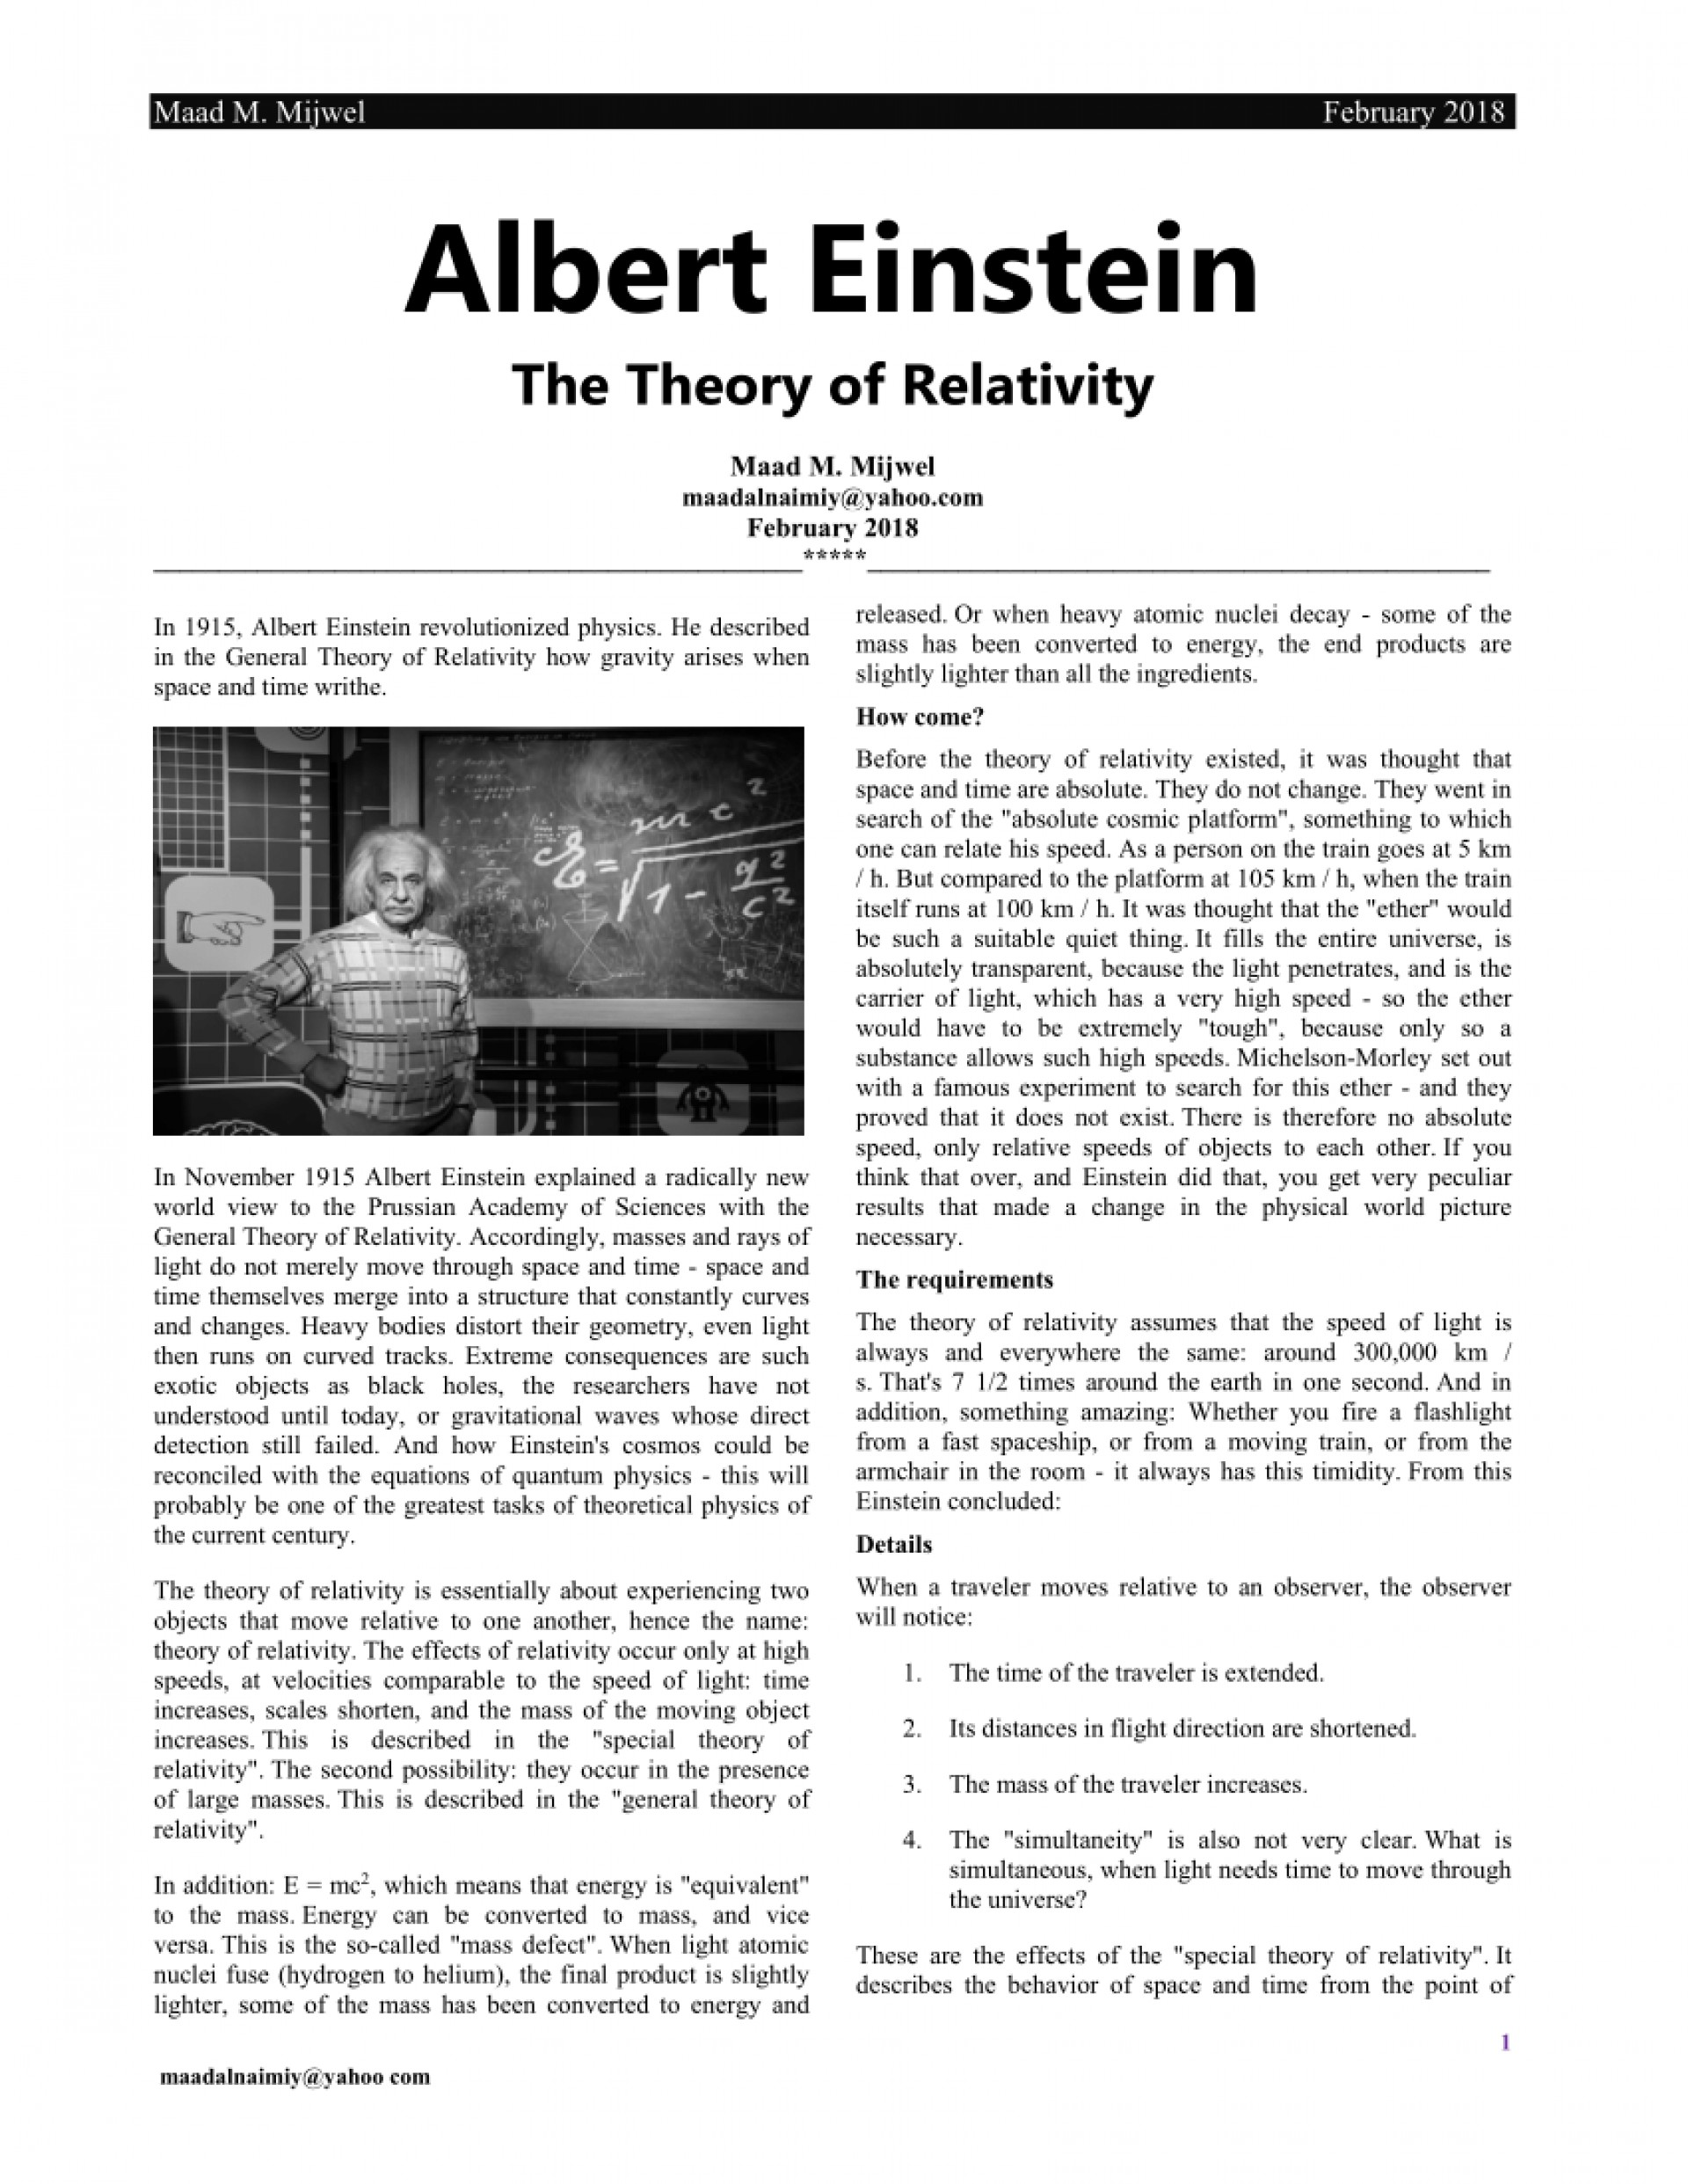 022 Albert Einstein Essay Largepreview Awesome Pdf Essays In Humanism 200 Words 1920